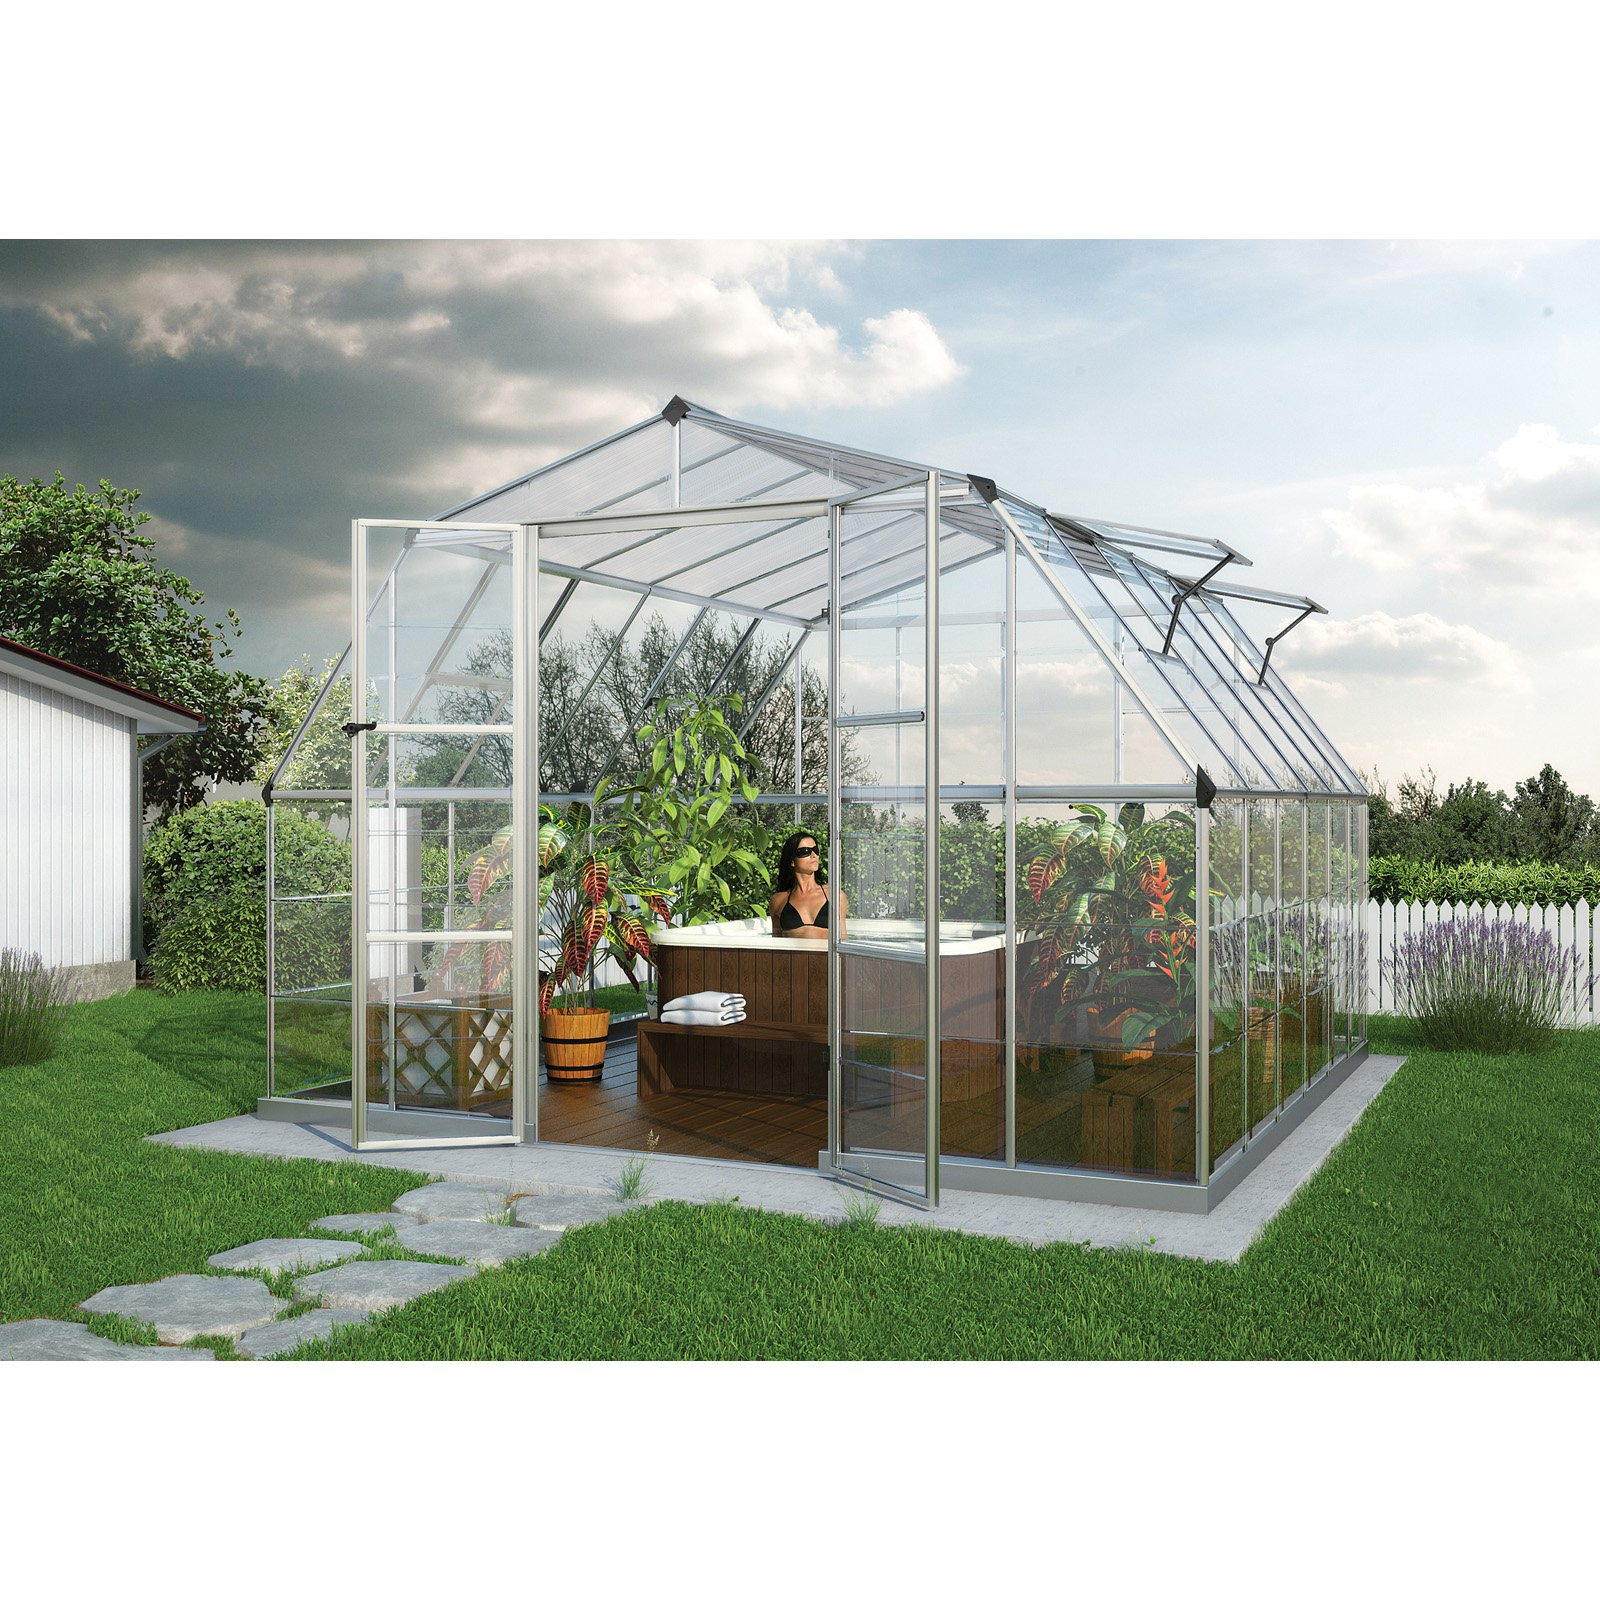 Palram Americana Silver Hobby Greenhouse 12 x 12 ft. by Overstock